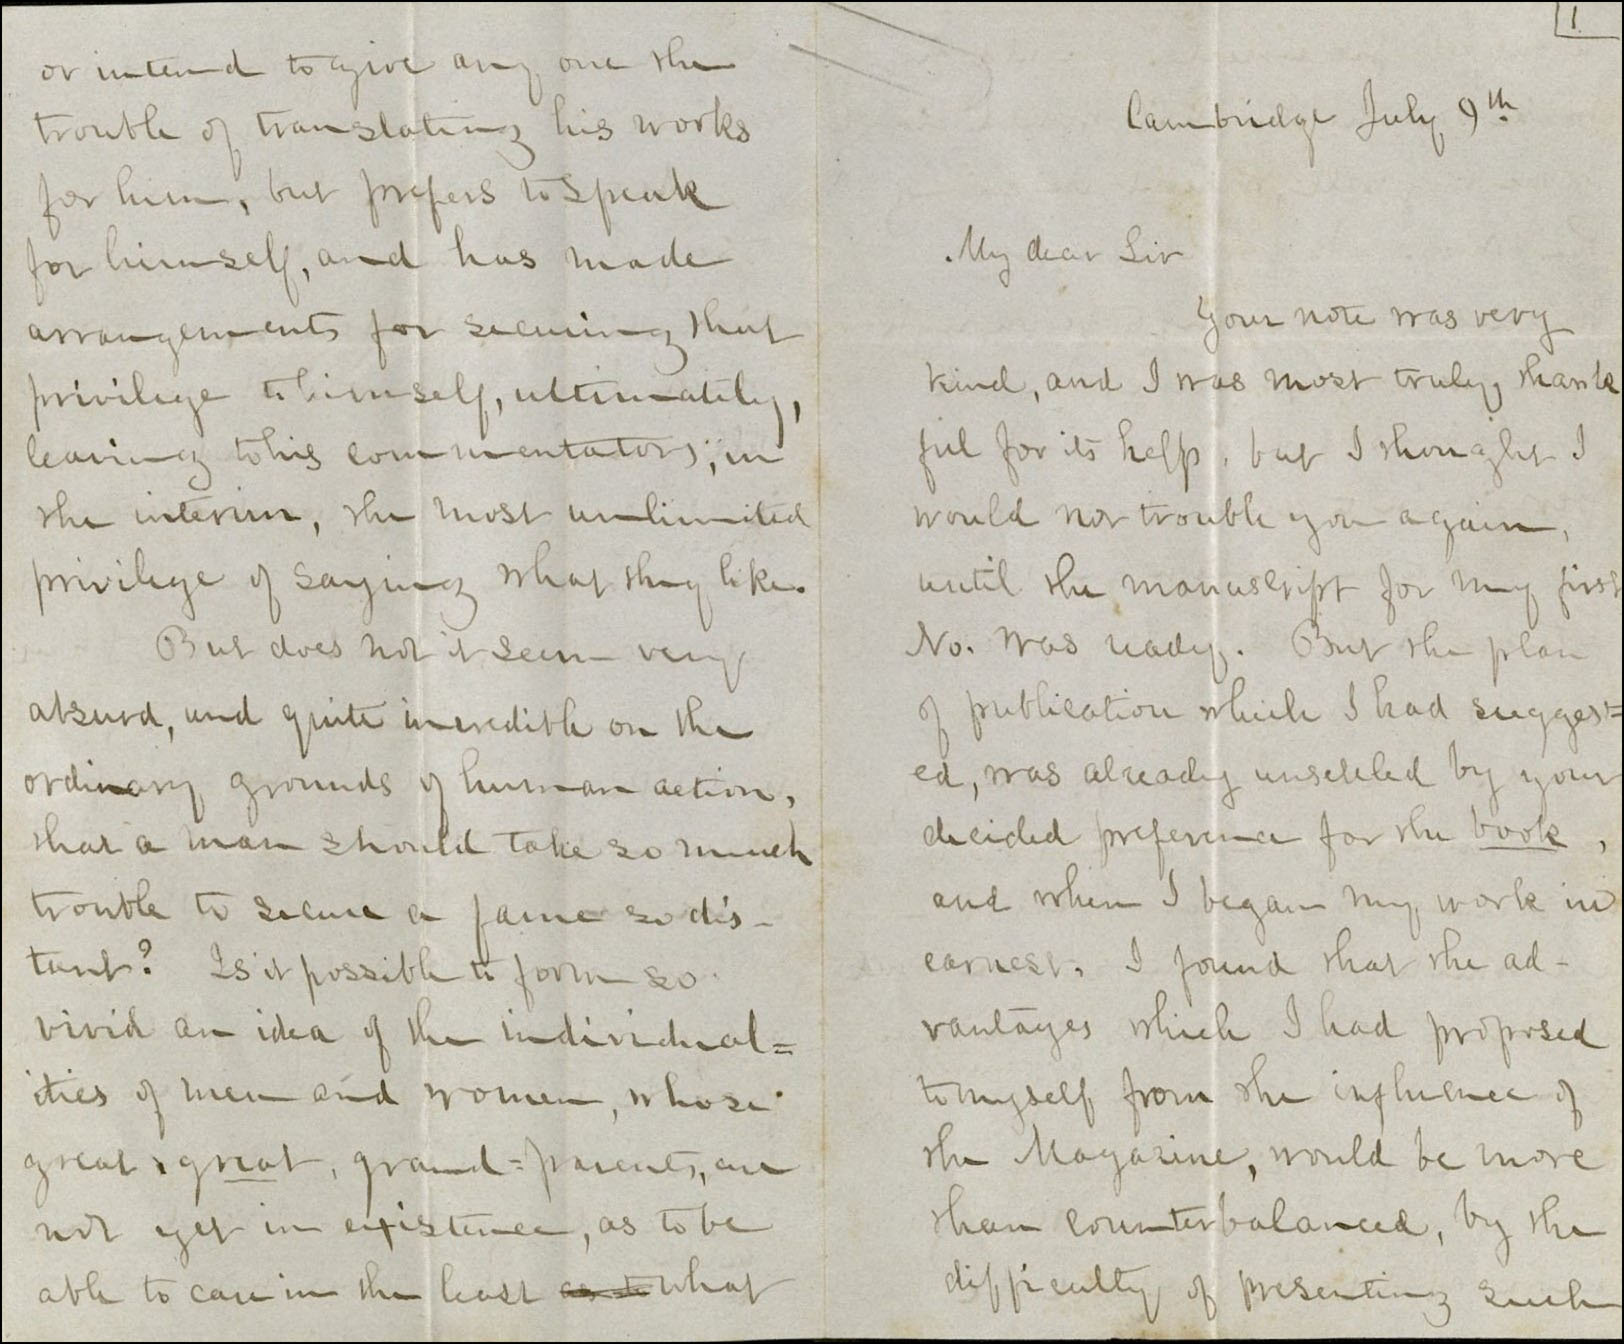 Delia Bacon, letter to Ralph Waldo Emerson, 1852, p.1r. MS Am 1280 (139)